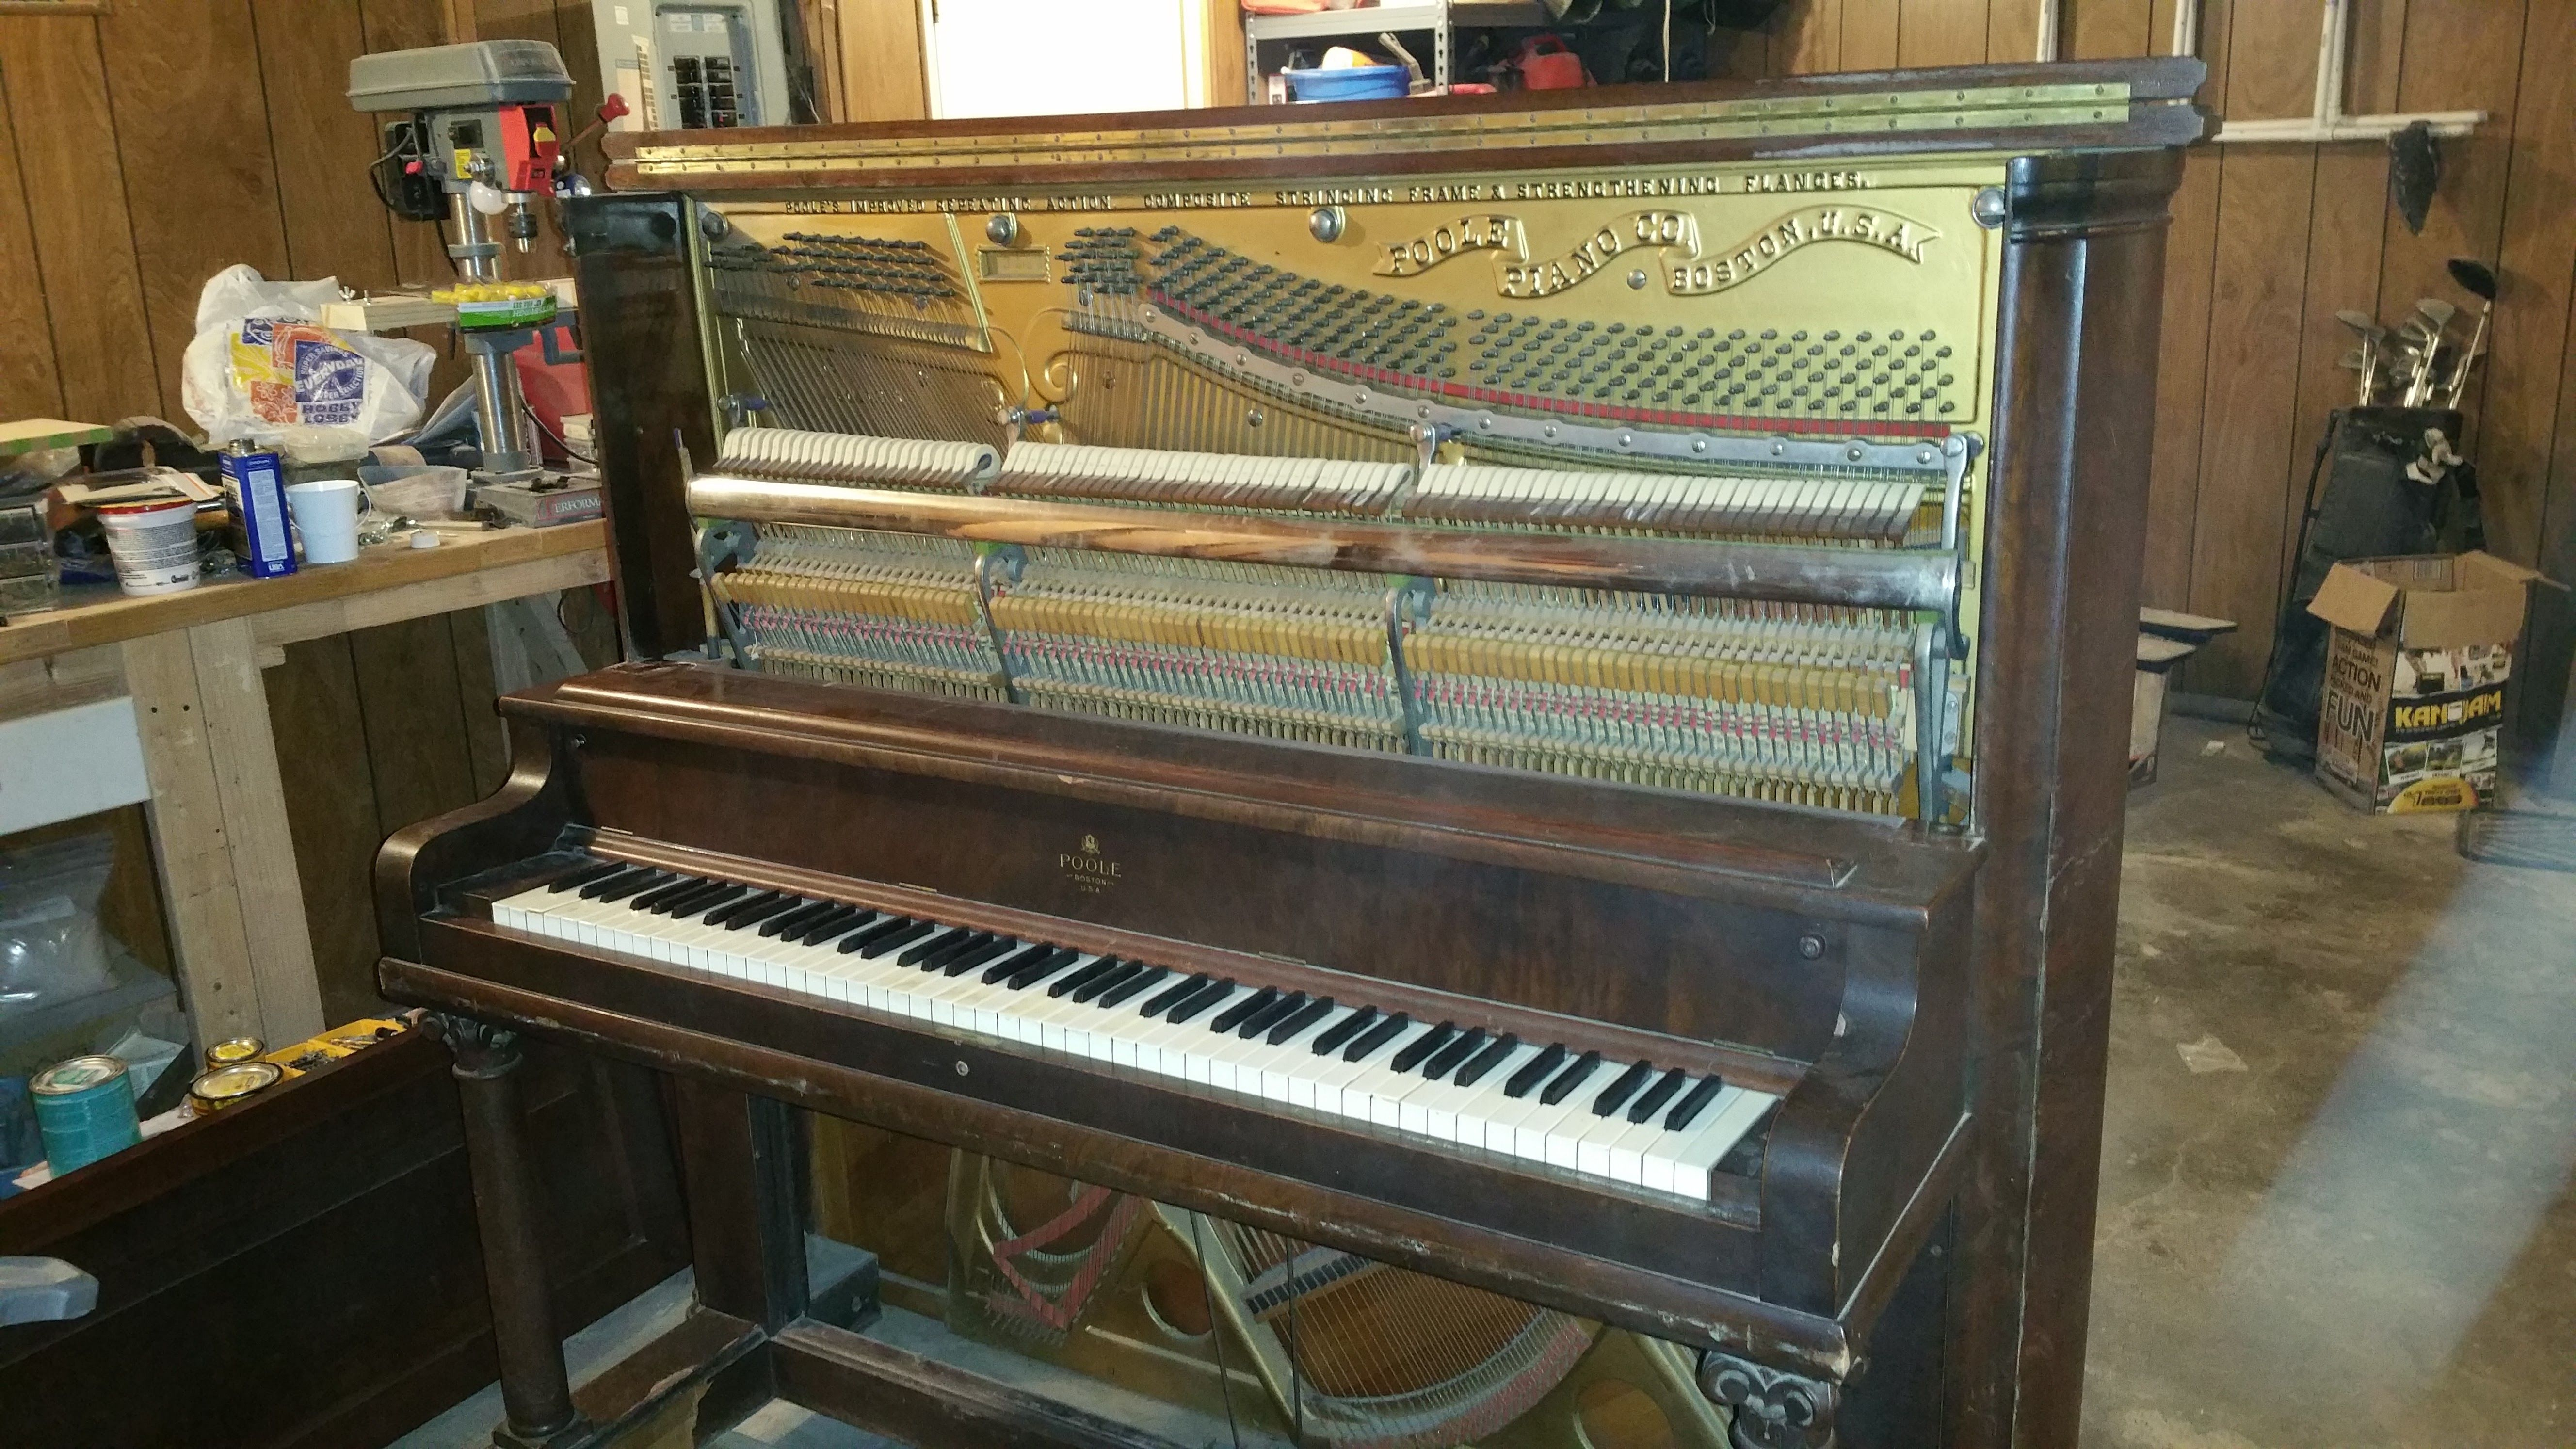 Converting a 100 year old upright grand piano to a bar